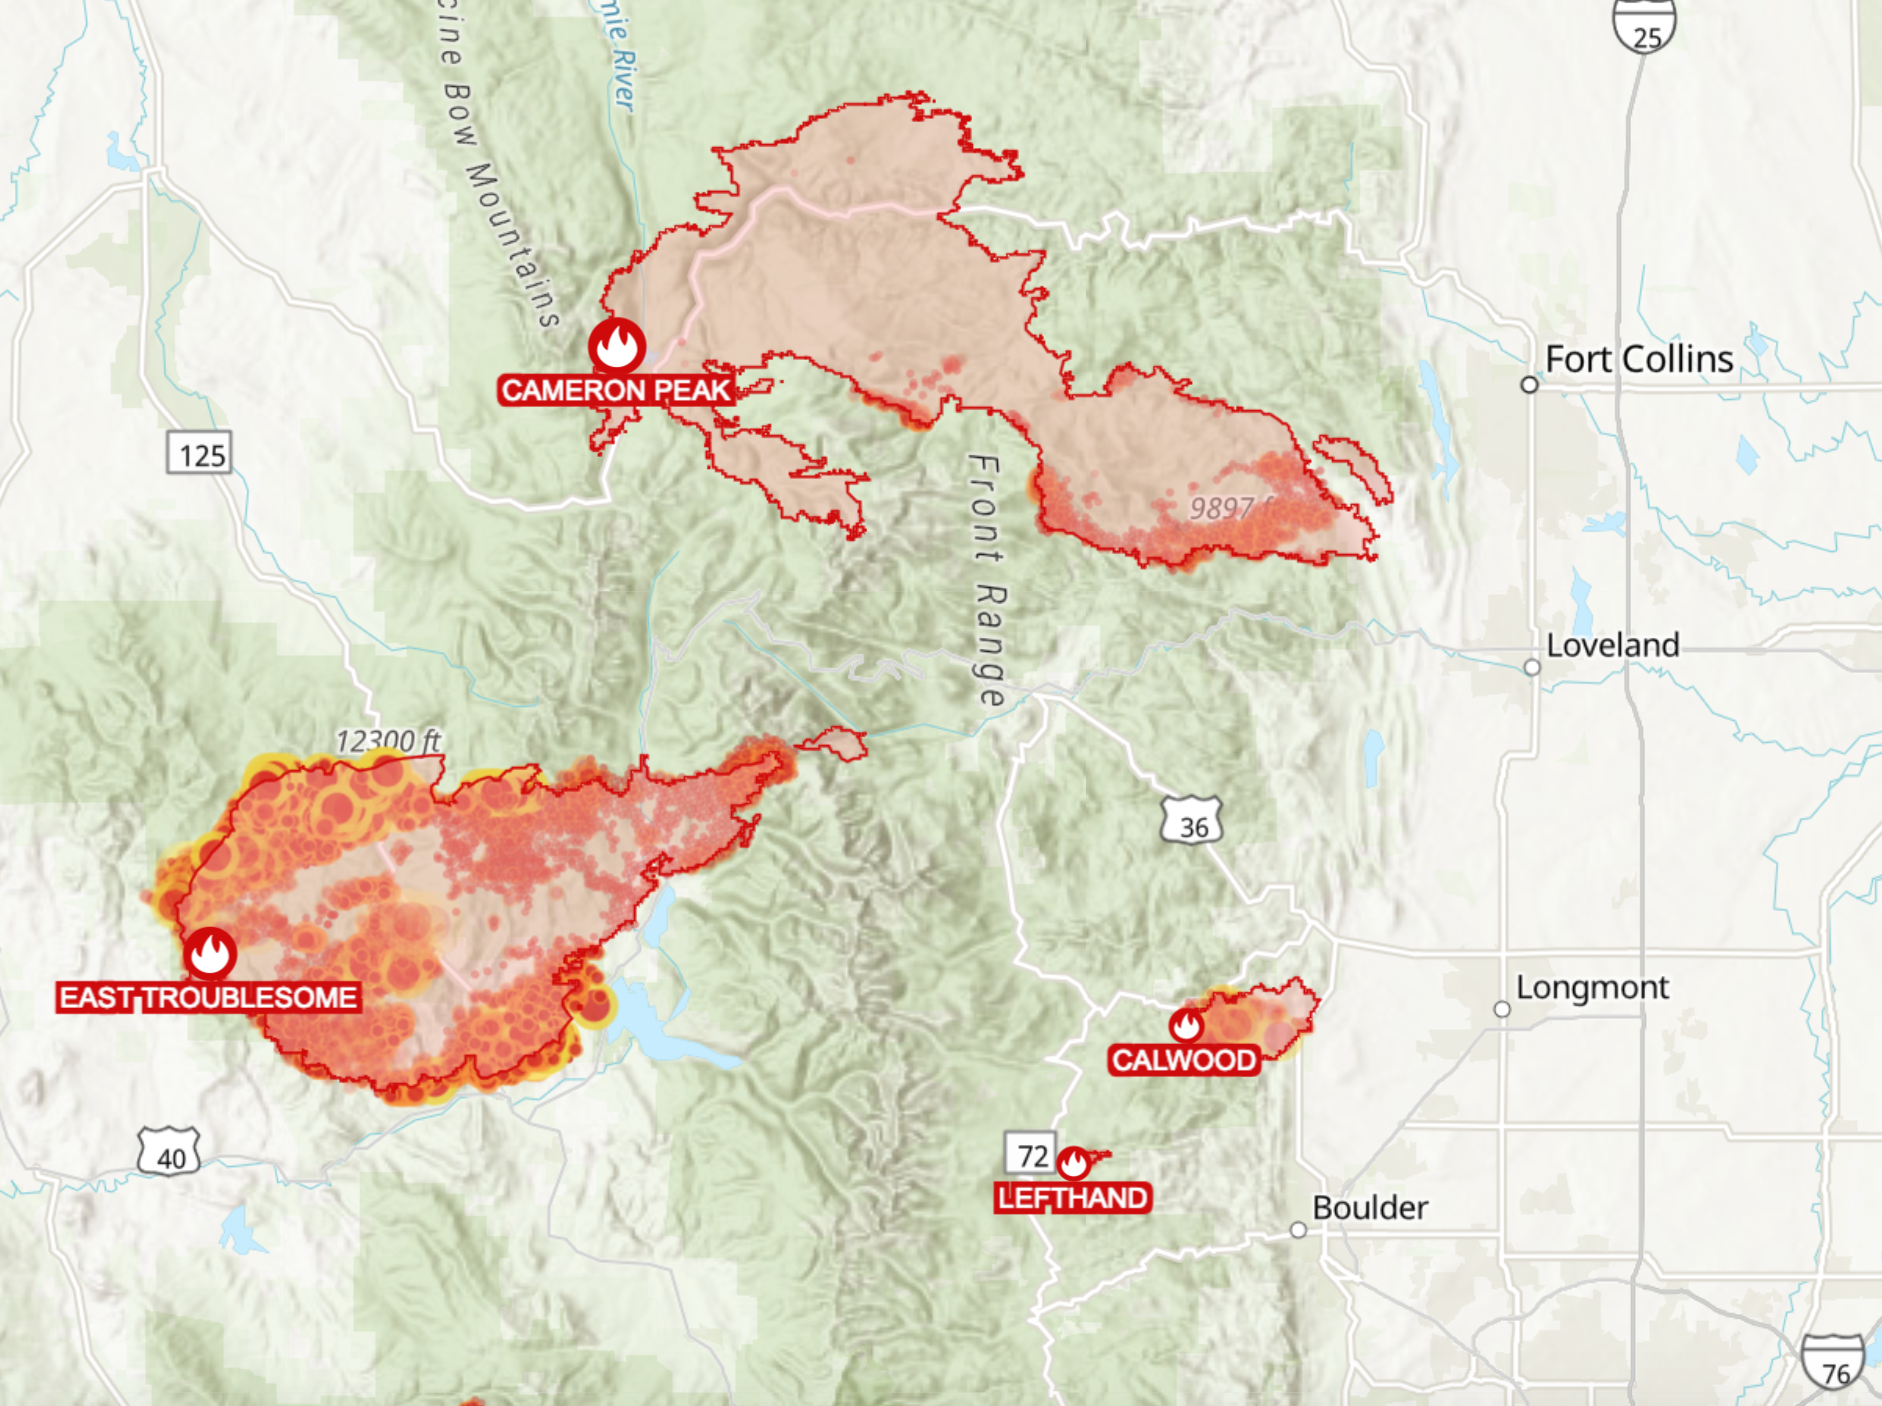 A map of the East Troublesome and Cameron Peak fires